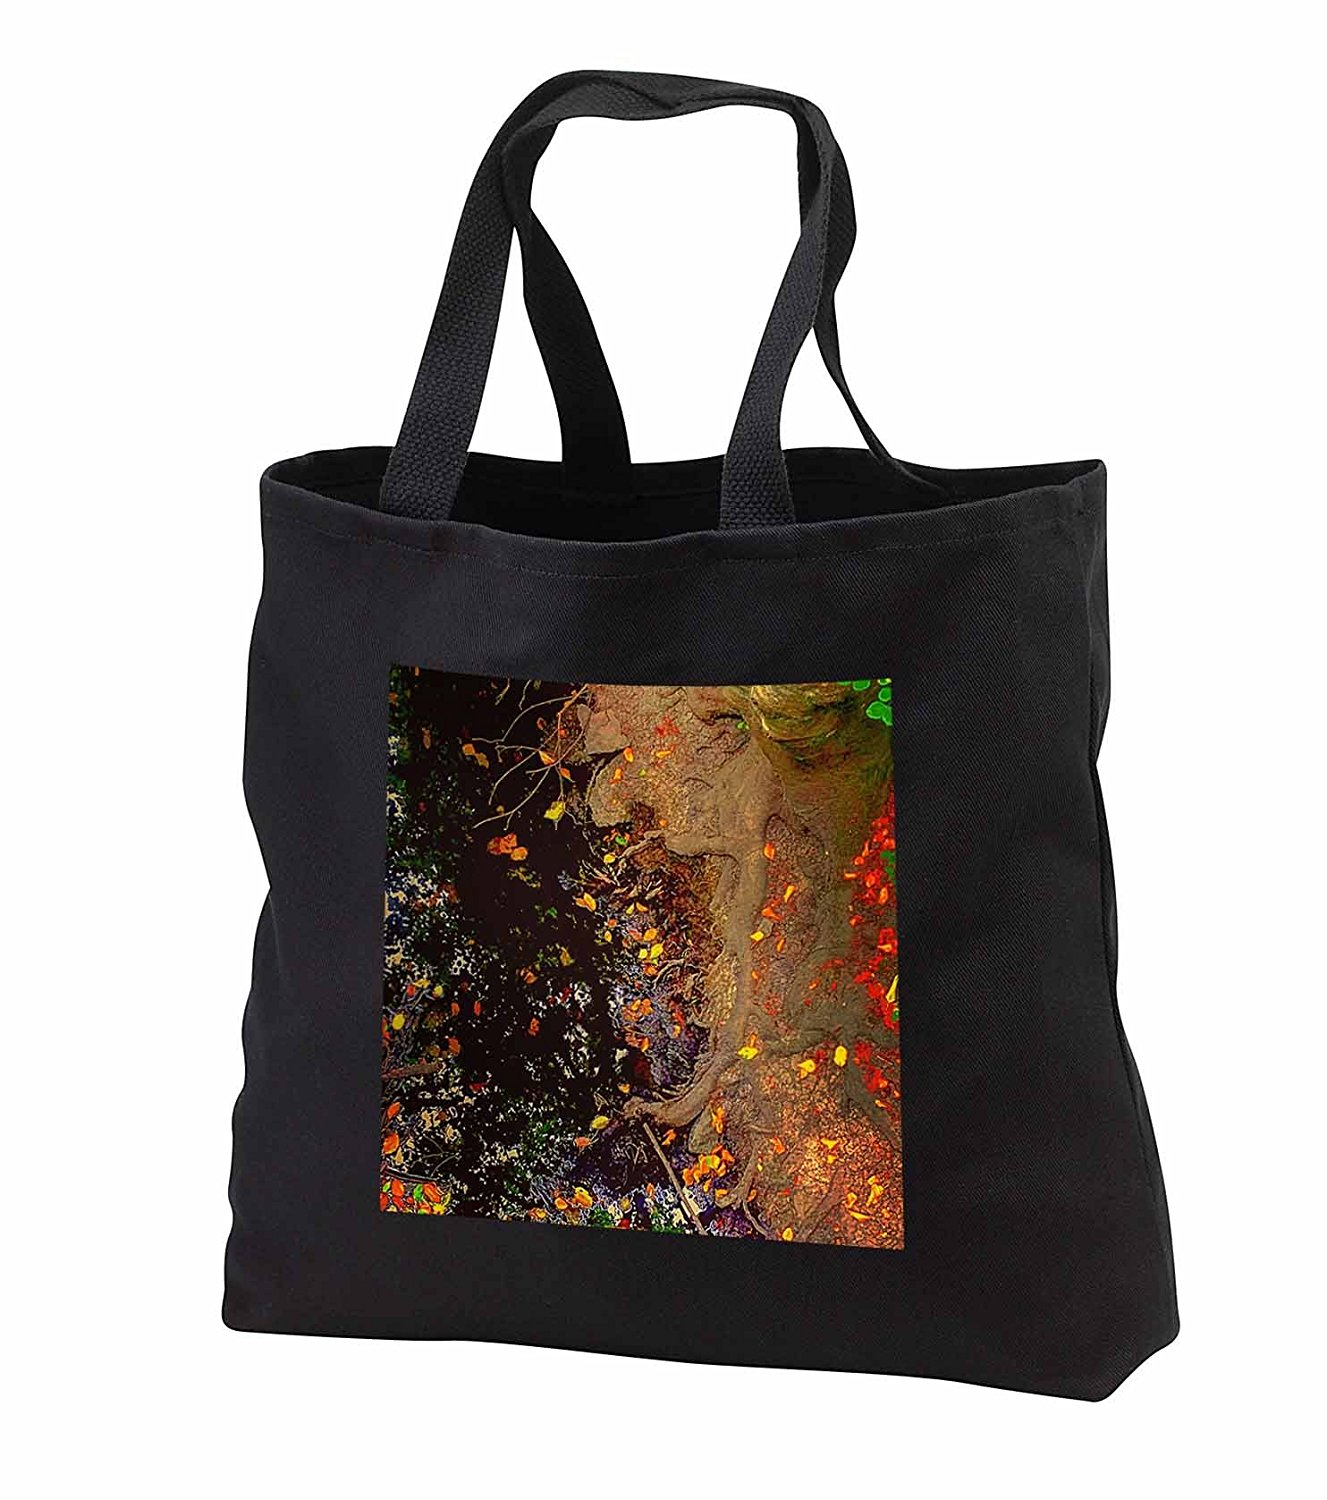 tb_245744 DYLAN SEIBOLD - PHOTOGRAPHY - LEAF RIVER TREE - Tote Bags